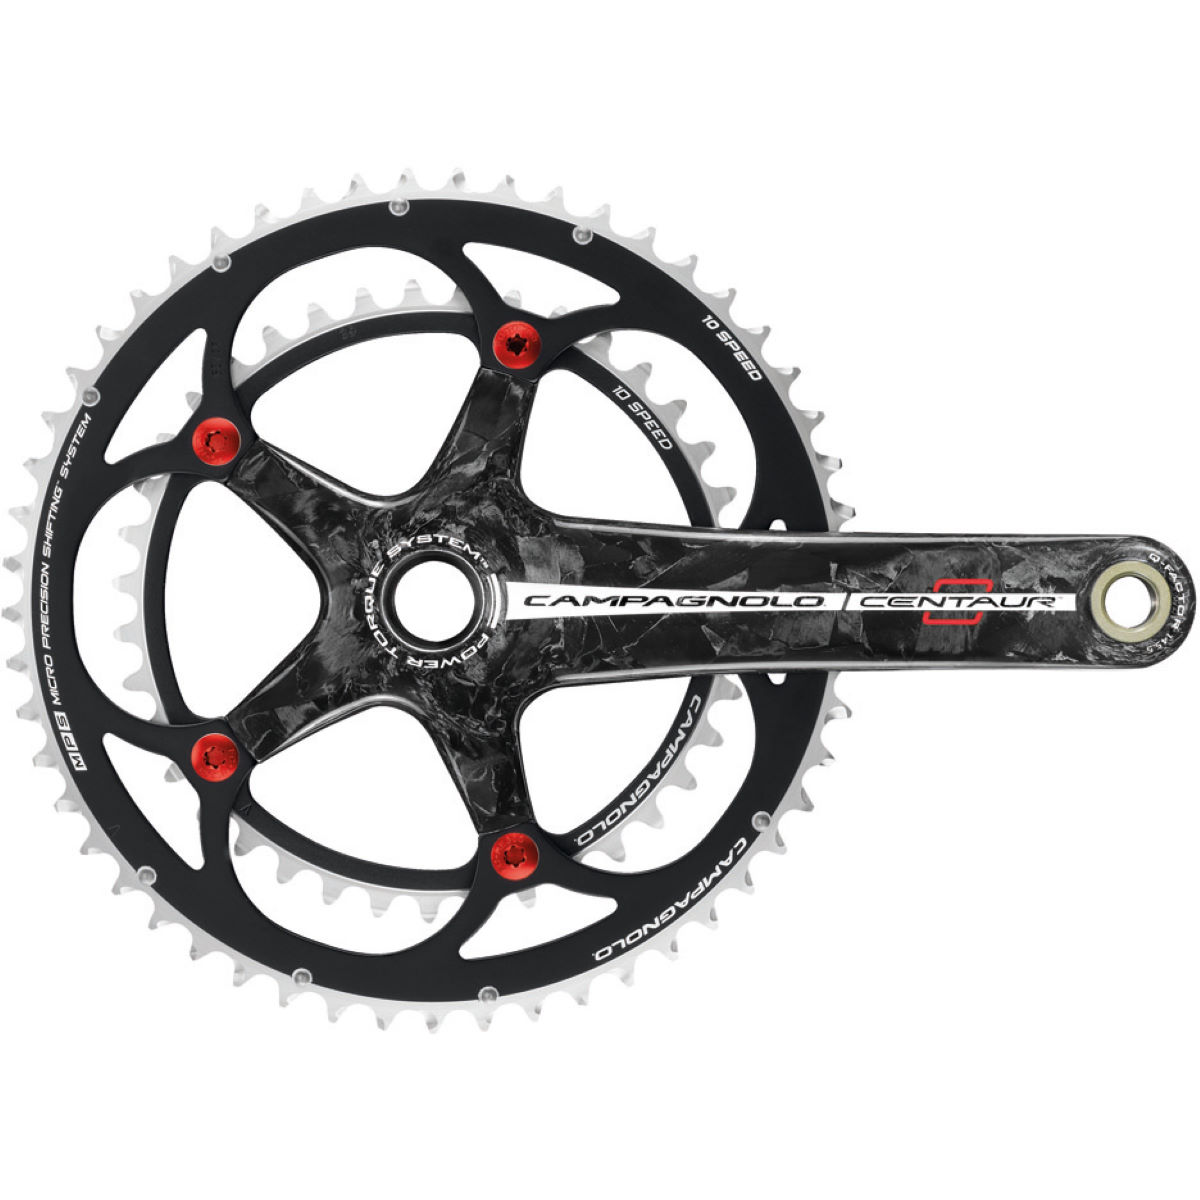 Campagnolo Centaur Red 10 Speed P-Torque Carbon Chainset